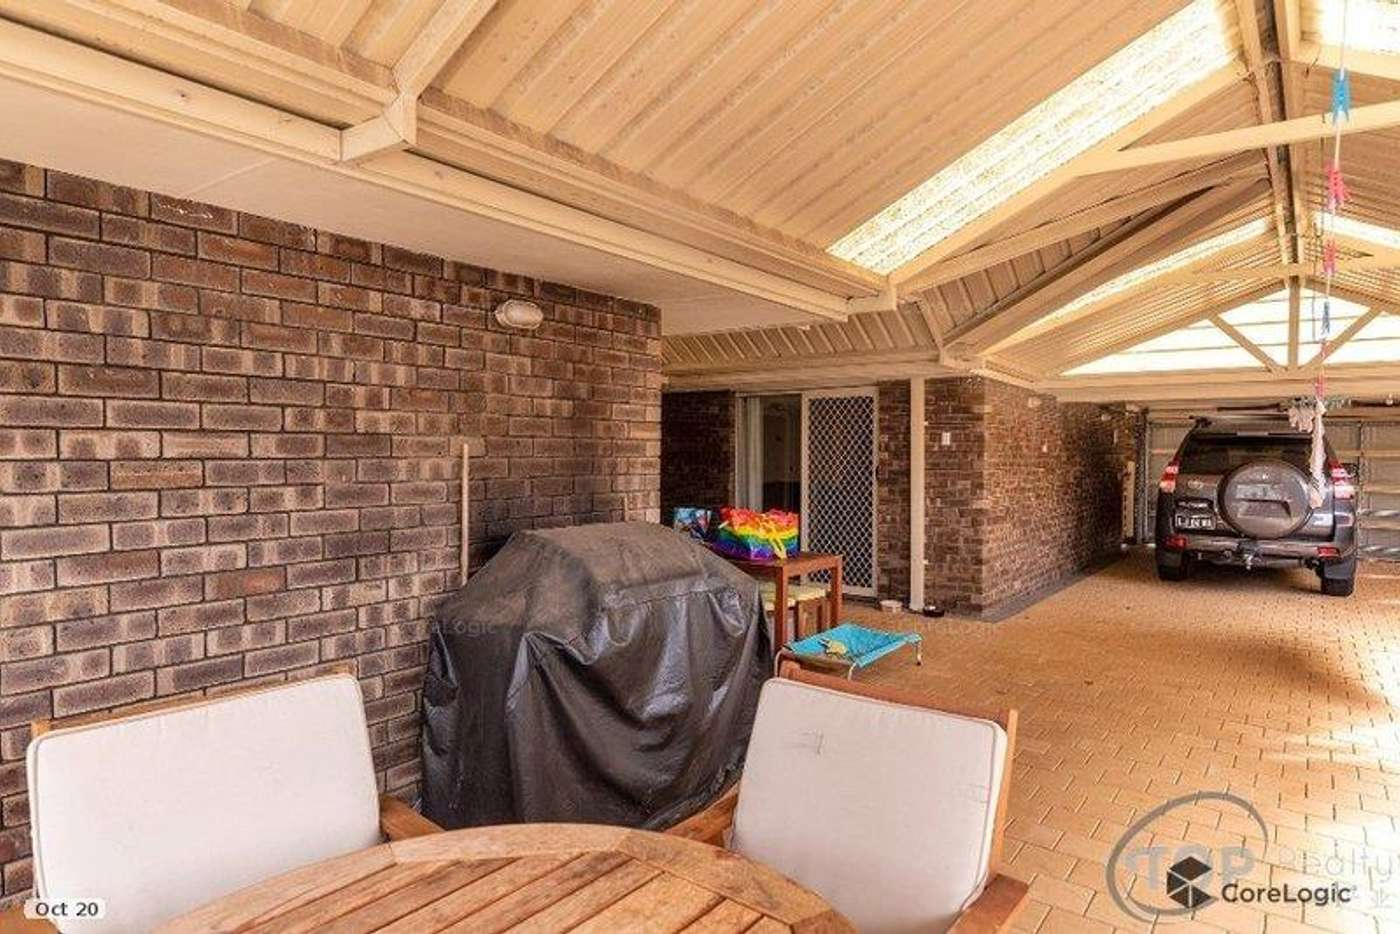 Main view of Homely house listing, 18 Balboa Row, Willetton WA 6155